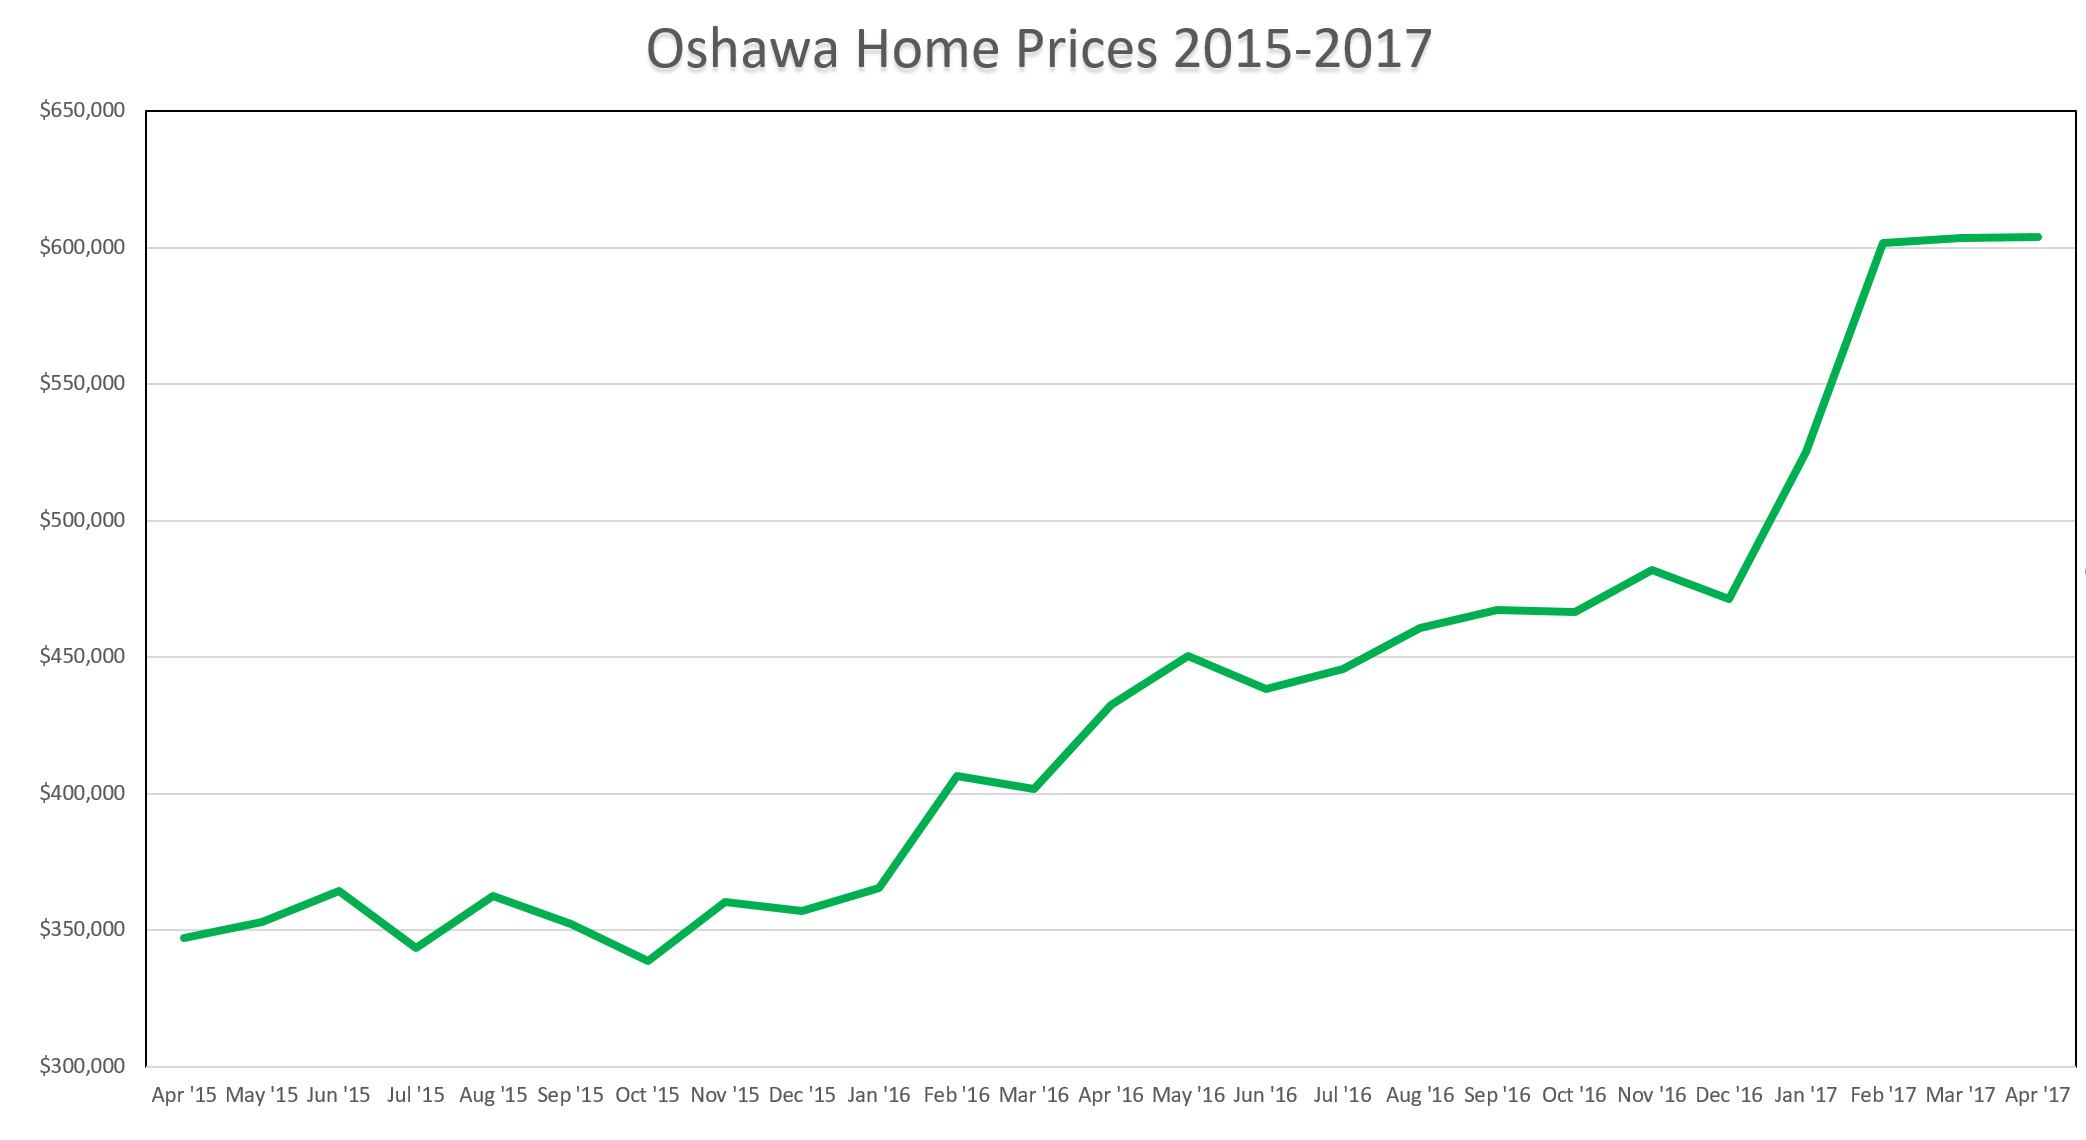 Oshawa Home Prices